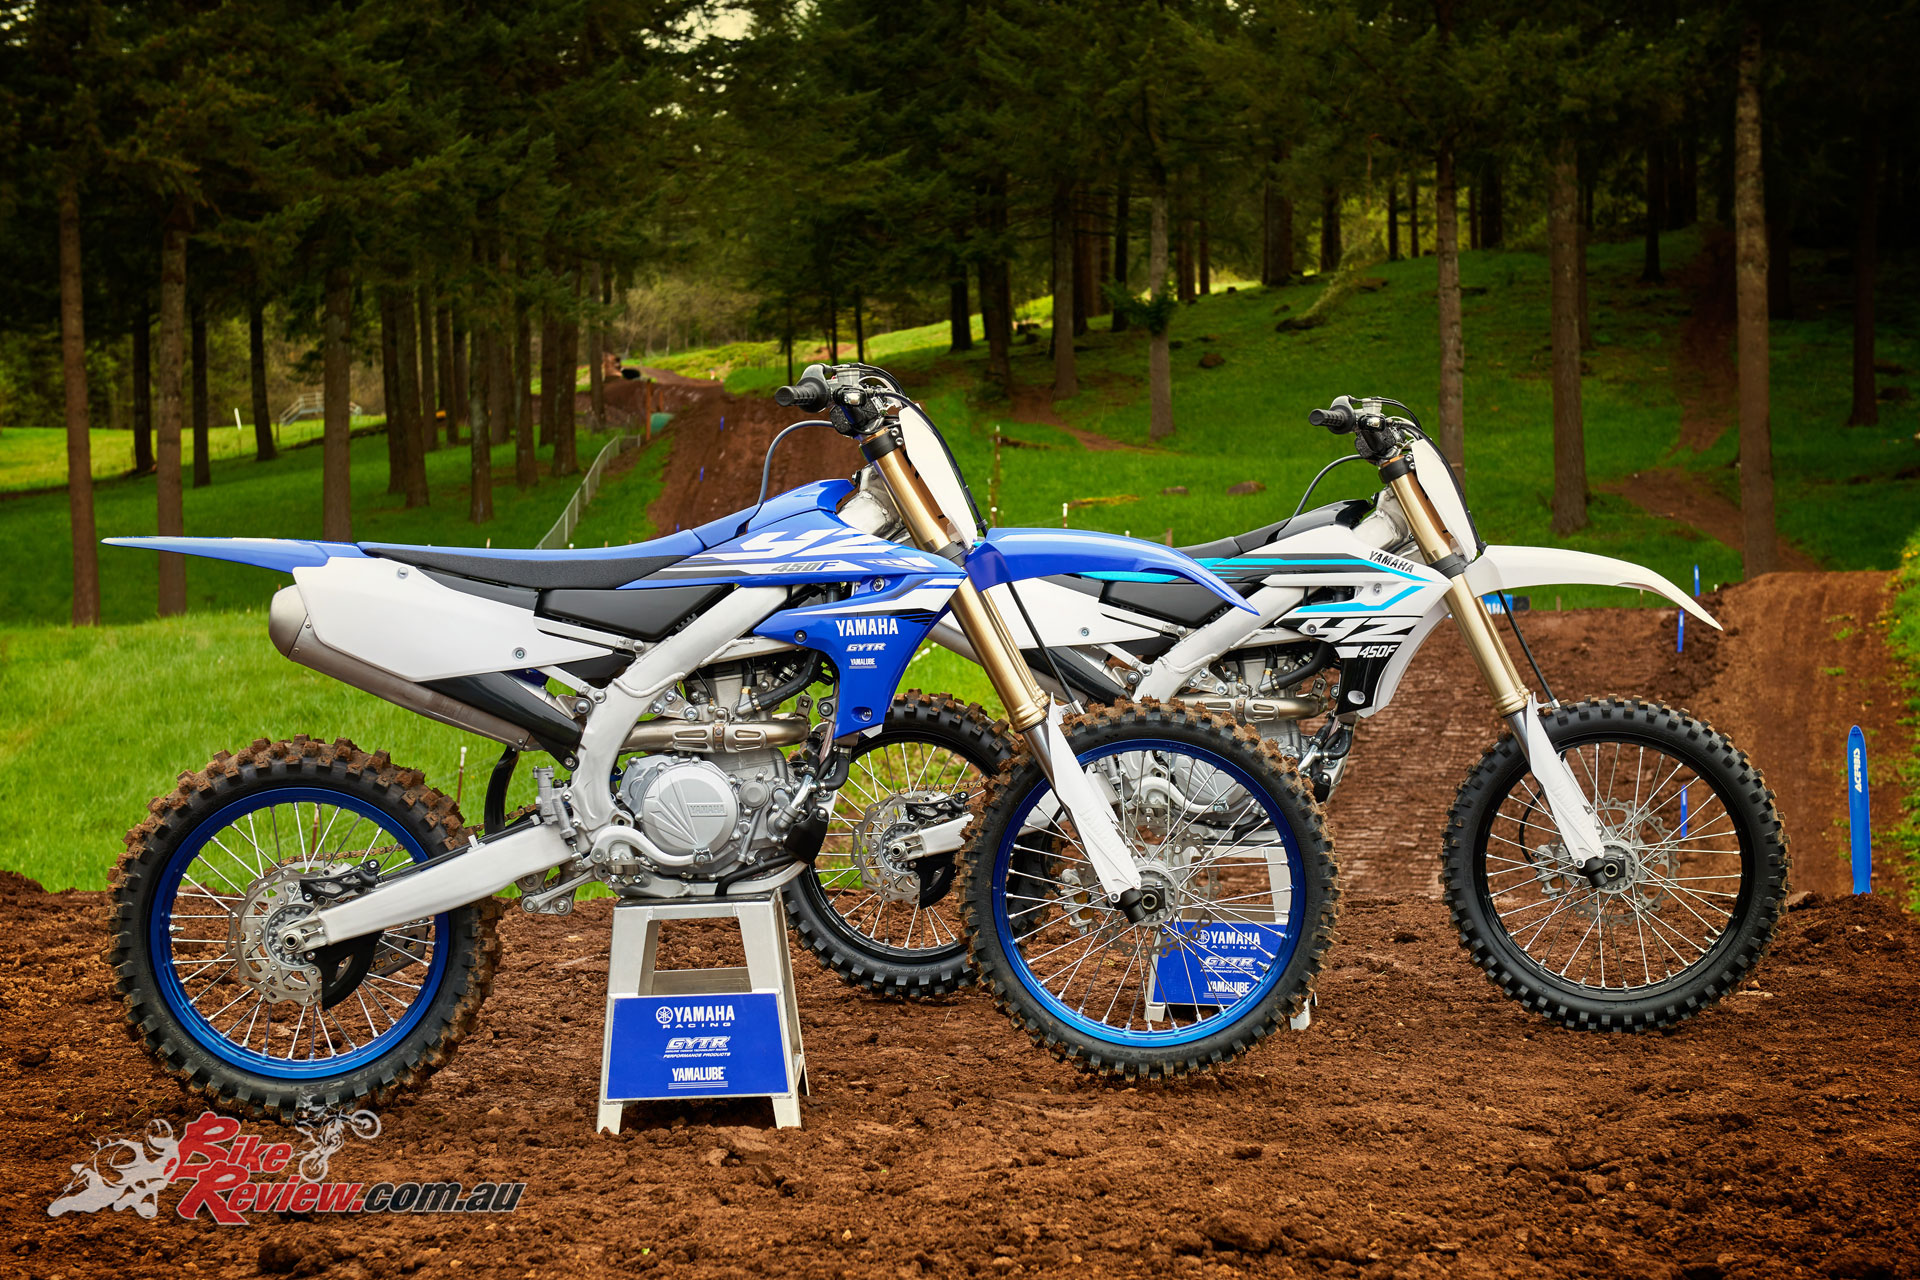 Yamaha's new for 2018 YZ450F will be available from August for $12,399 RRP